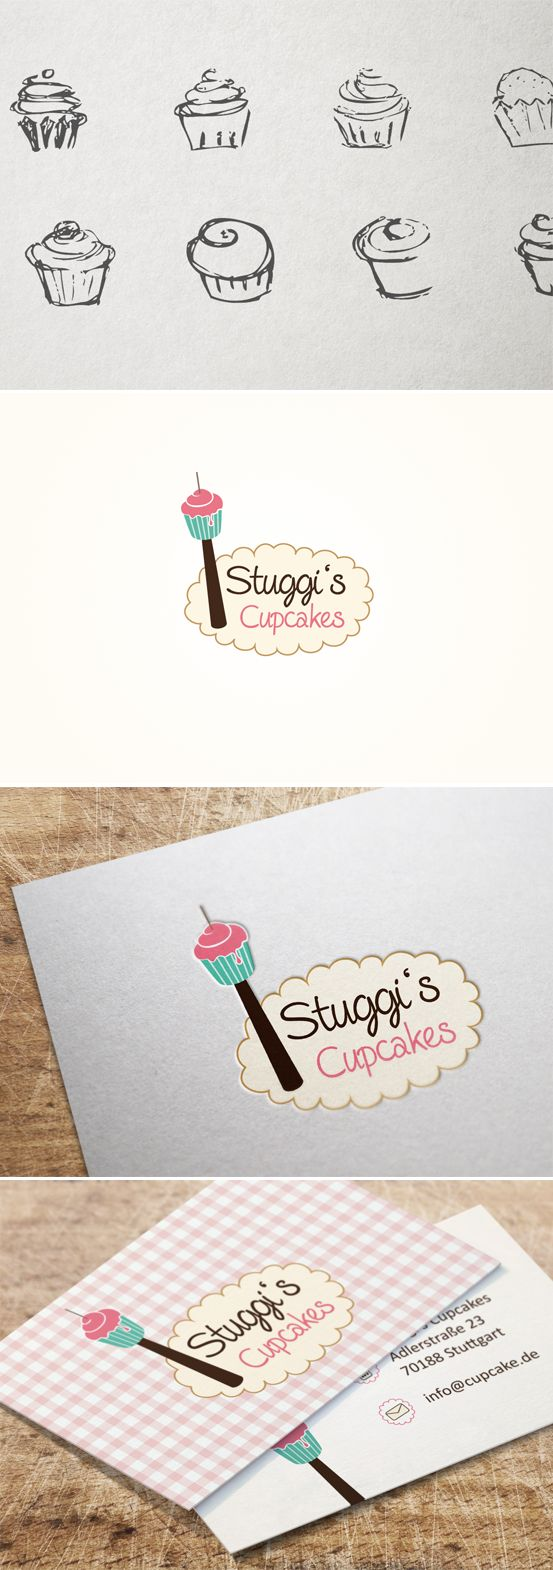 Für Stuggi's Cupcakes, einem Start-Up, entwickelte Smoco das Logo und die Visitenkarten. | #design #logo #skytower #fernsehturm #cupcake #bake  #visitenkarte  #business card #stuttgart #Germany | made with love in Stuttgart by www.smoco.de